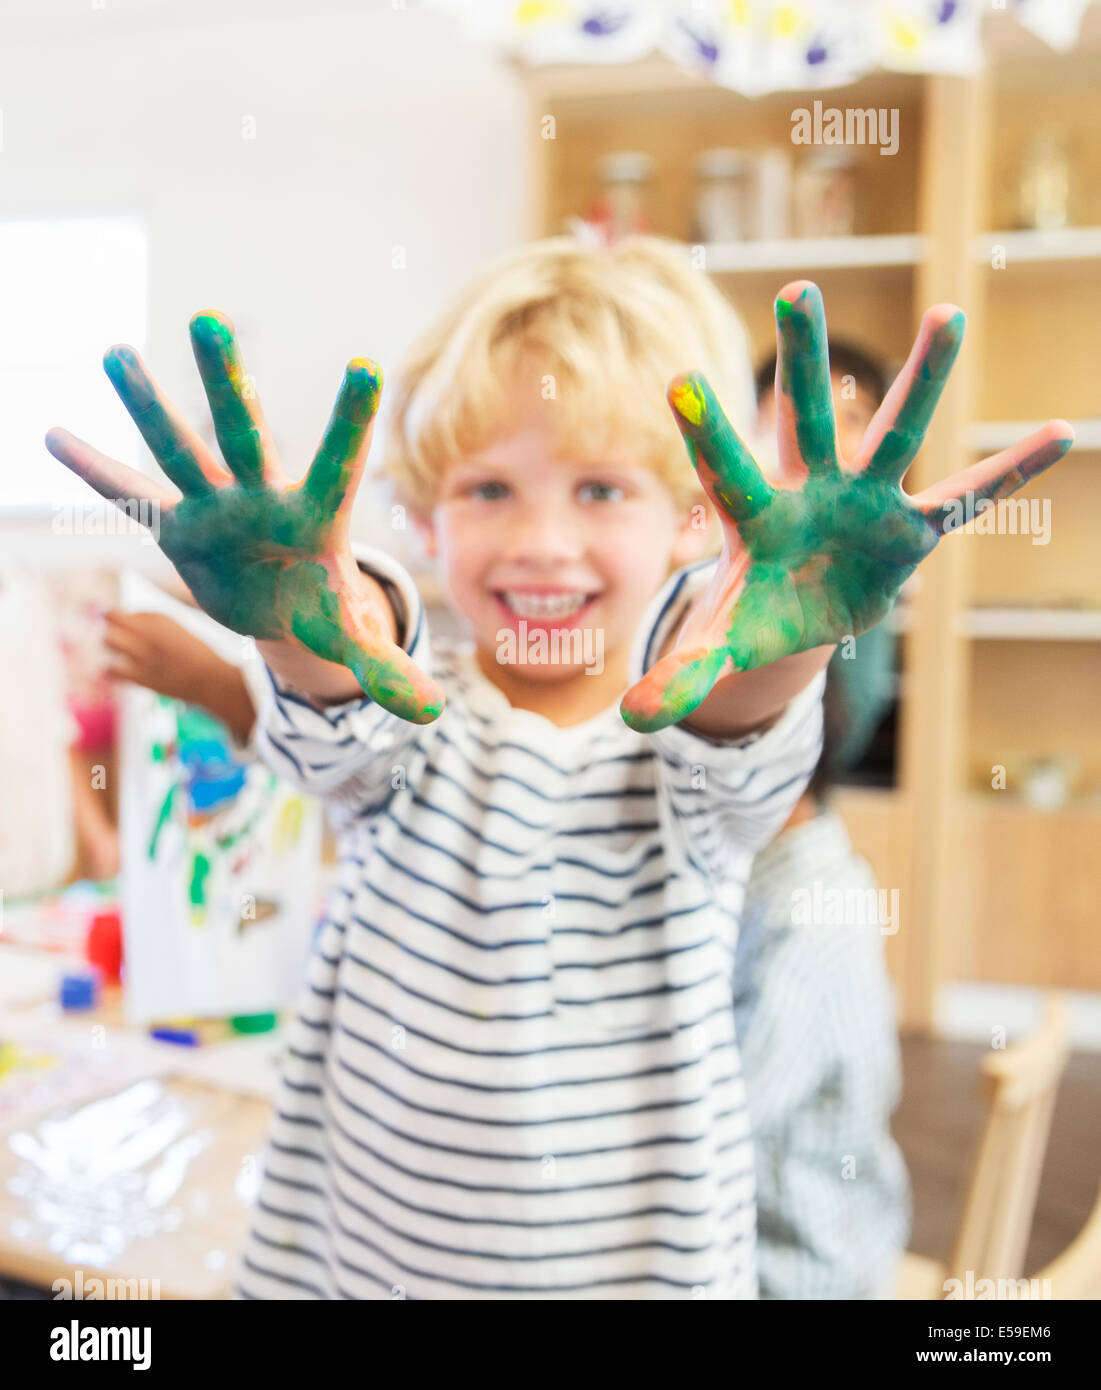 Student showing off messy hands in classroom - Stock Image